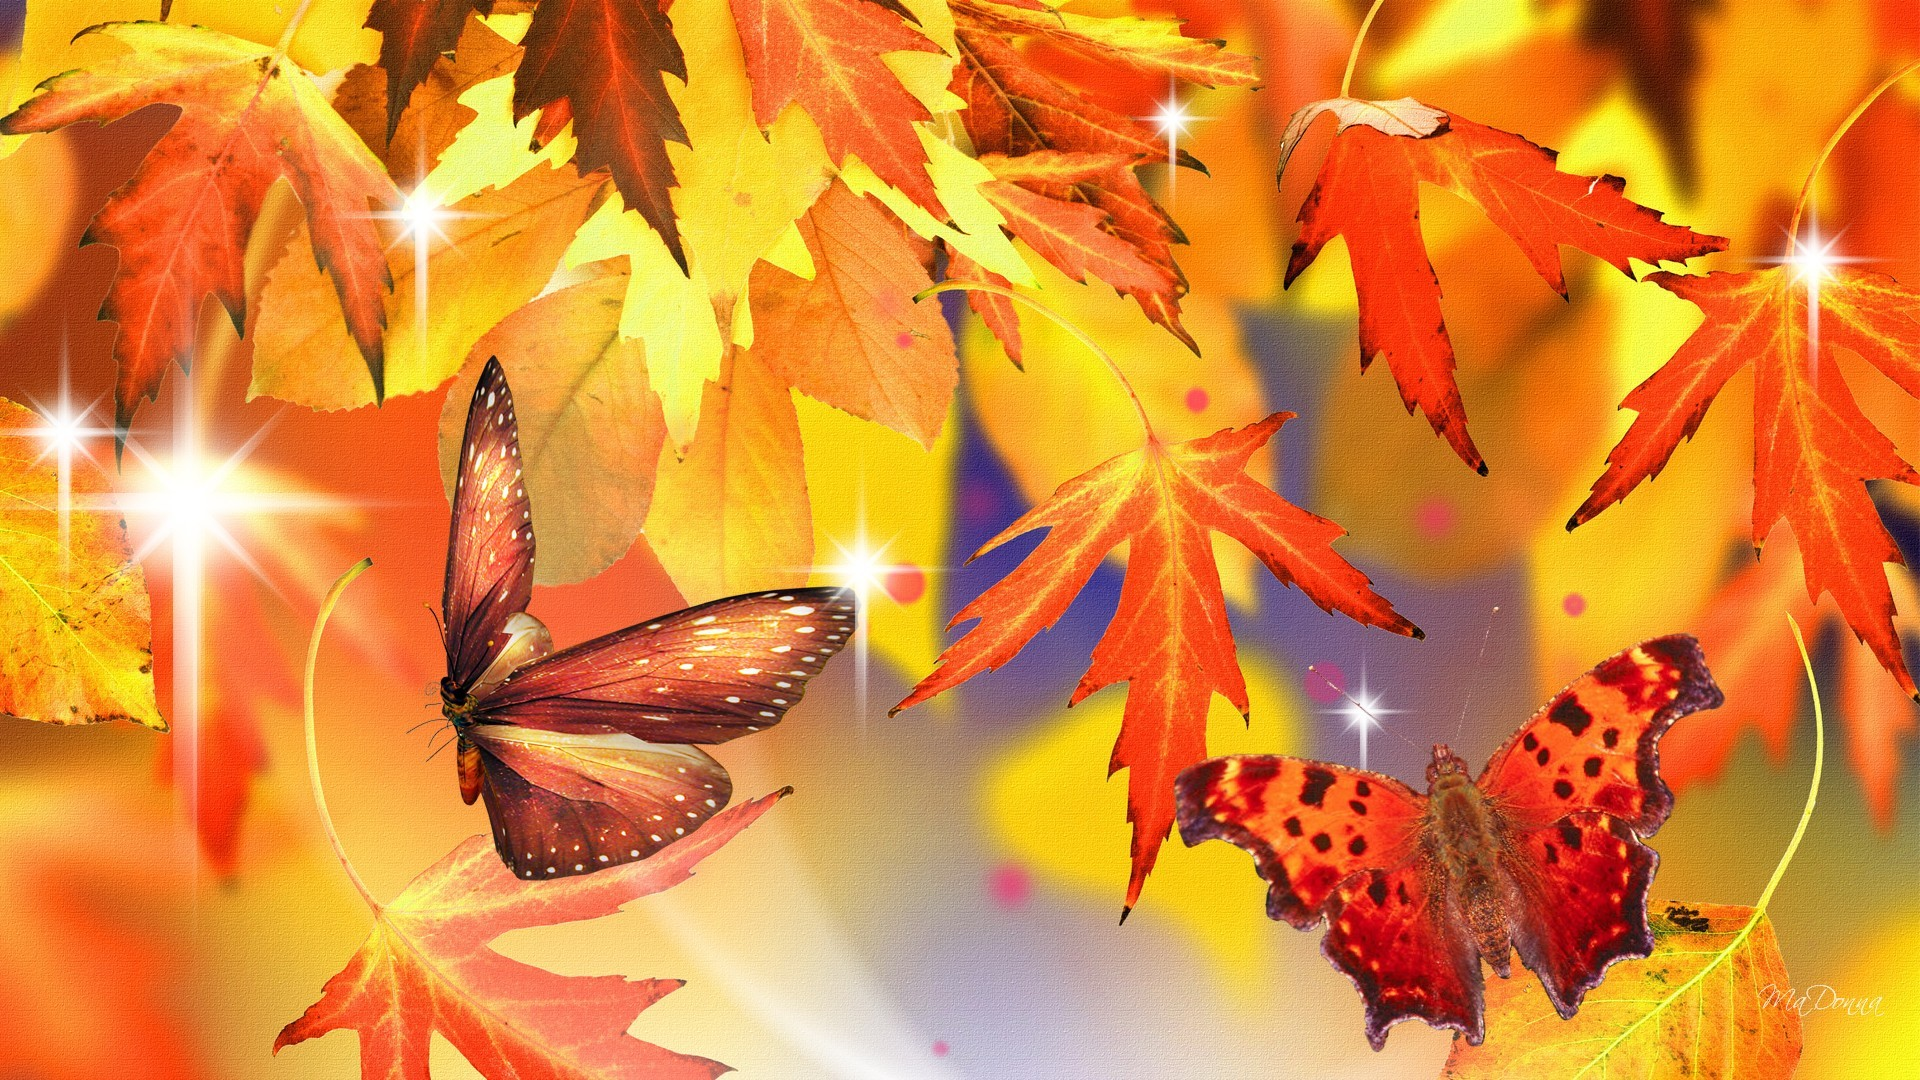 Fall Leaves Iphone 5 Wallpaper Autumn Leaves And Butterflies Hd Wallpaper Background